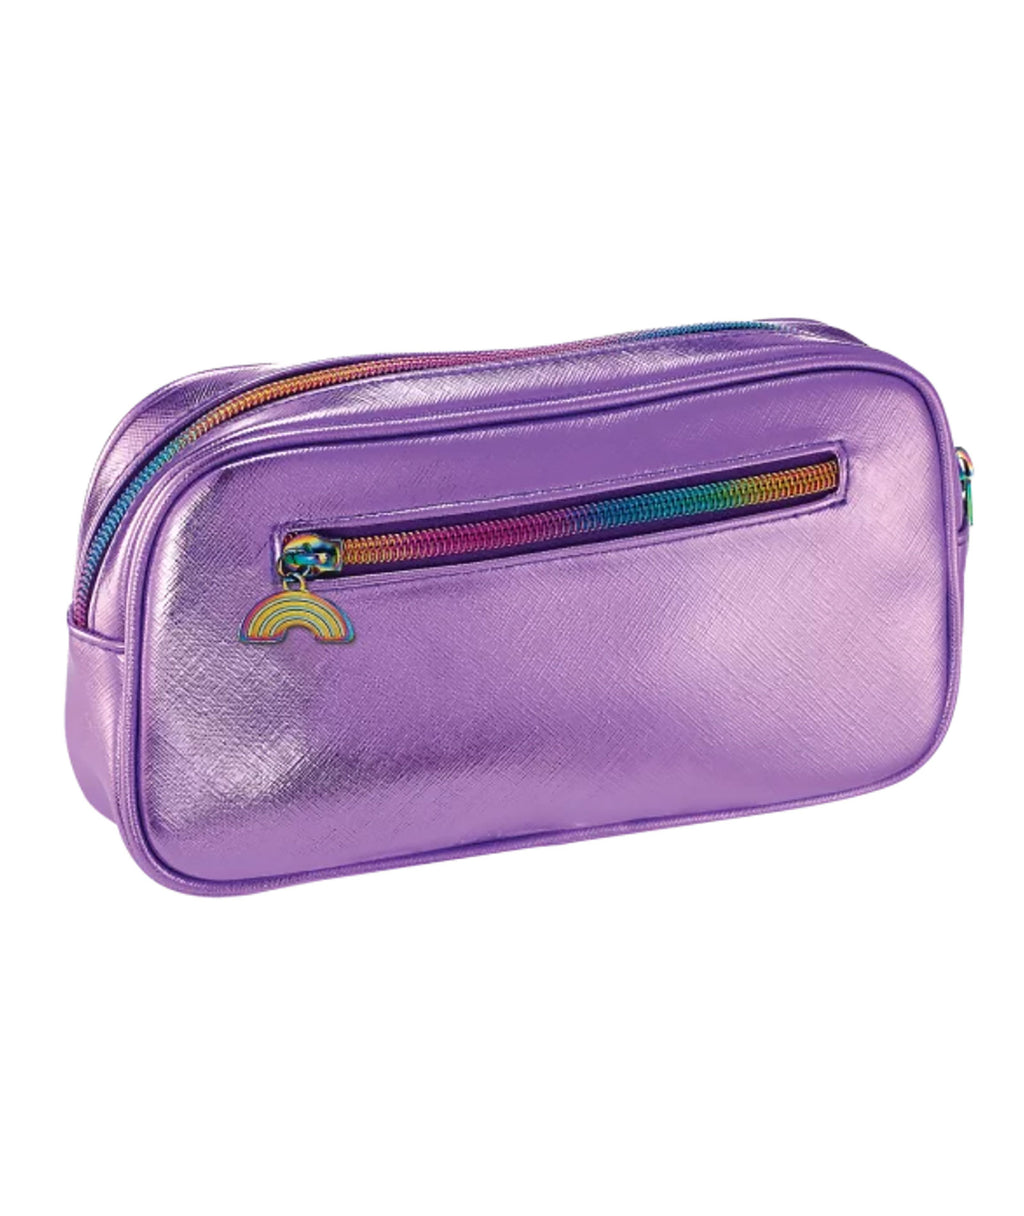 iScream Small Cosmetic Bag Purple